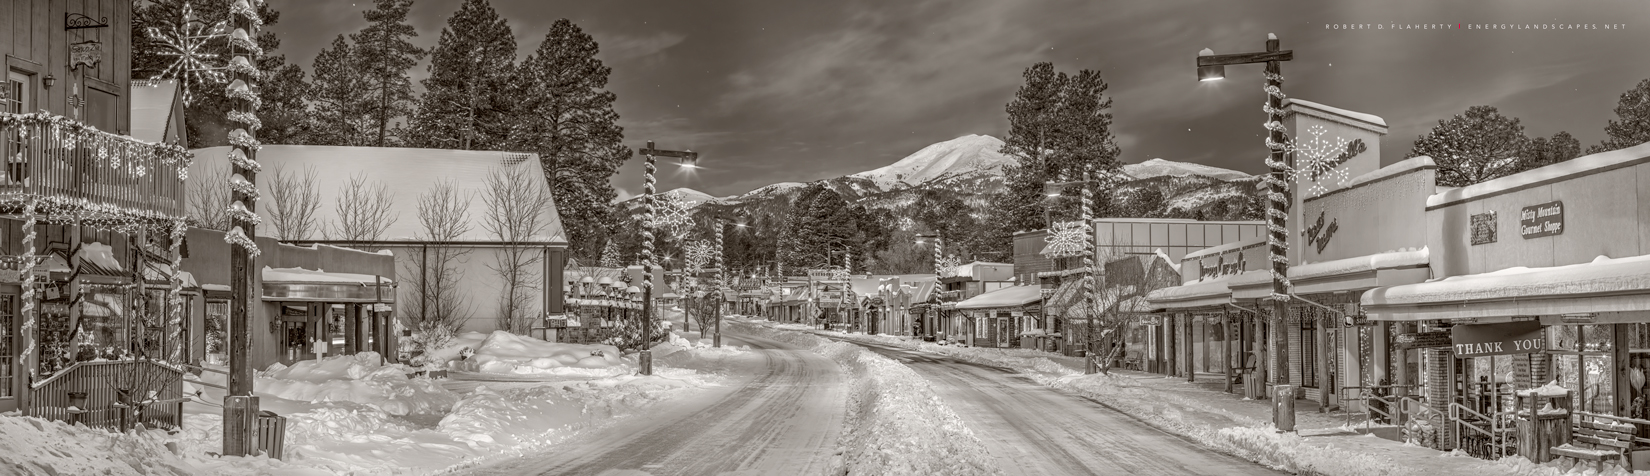 Christmas At Midtown In Sepia The image is a high resolution panorama with an approximate 4:1 ratio featuring the shopping district...